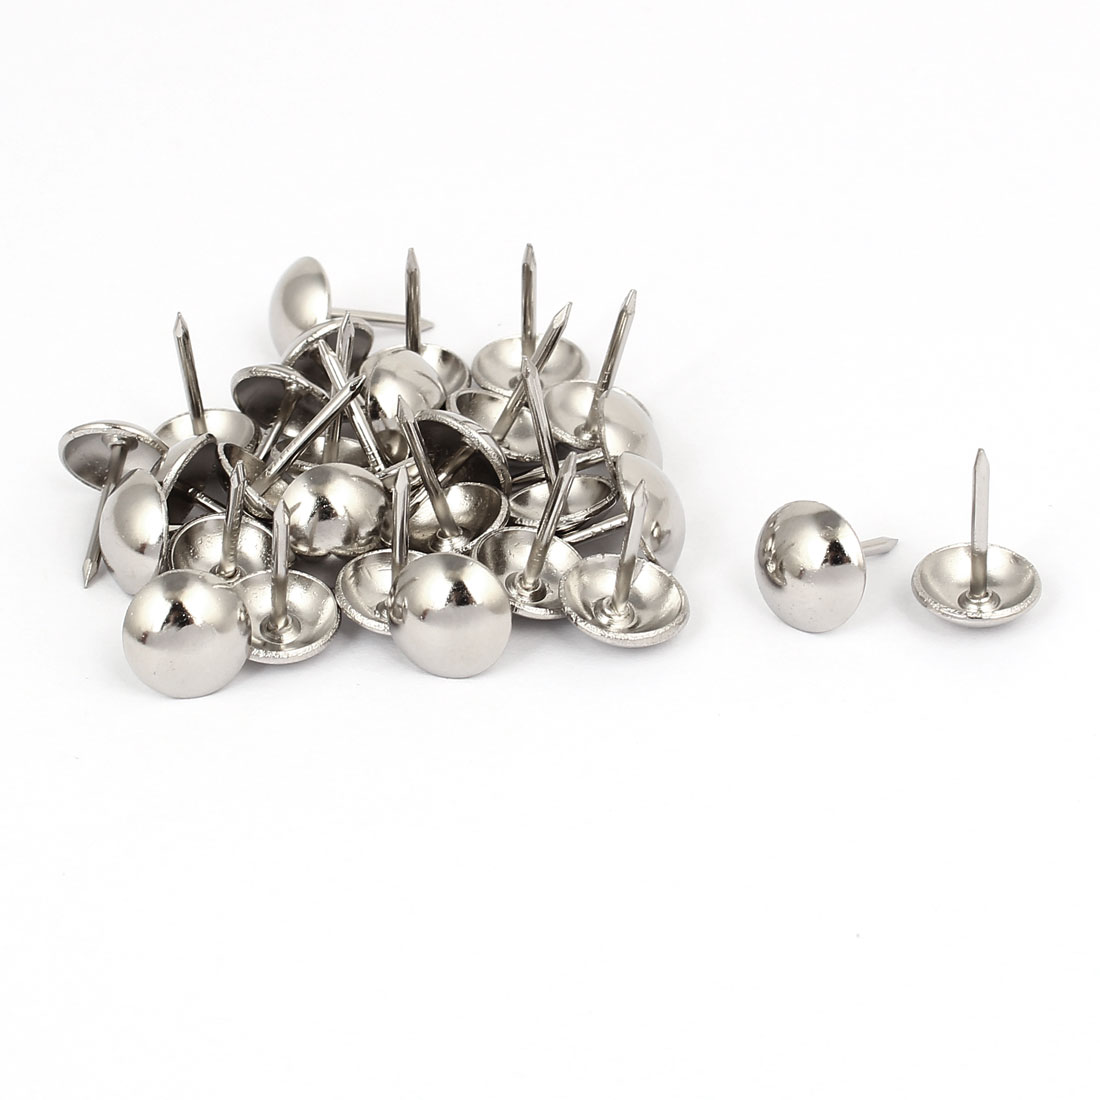 "Home Metal Round Domed Head Upholstery Tack Nail Silver Tone 7/16"" Dia 30pcs"